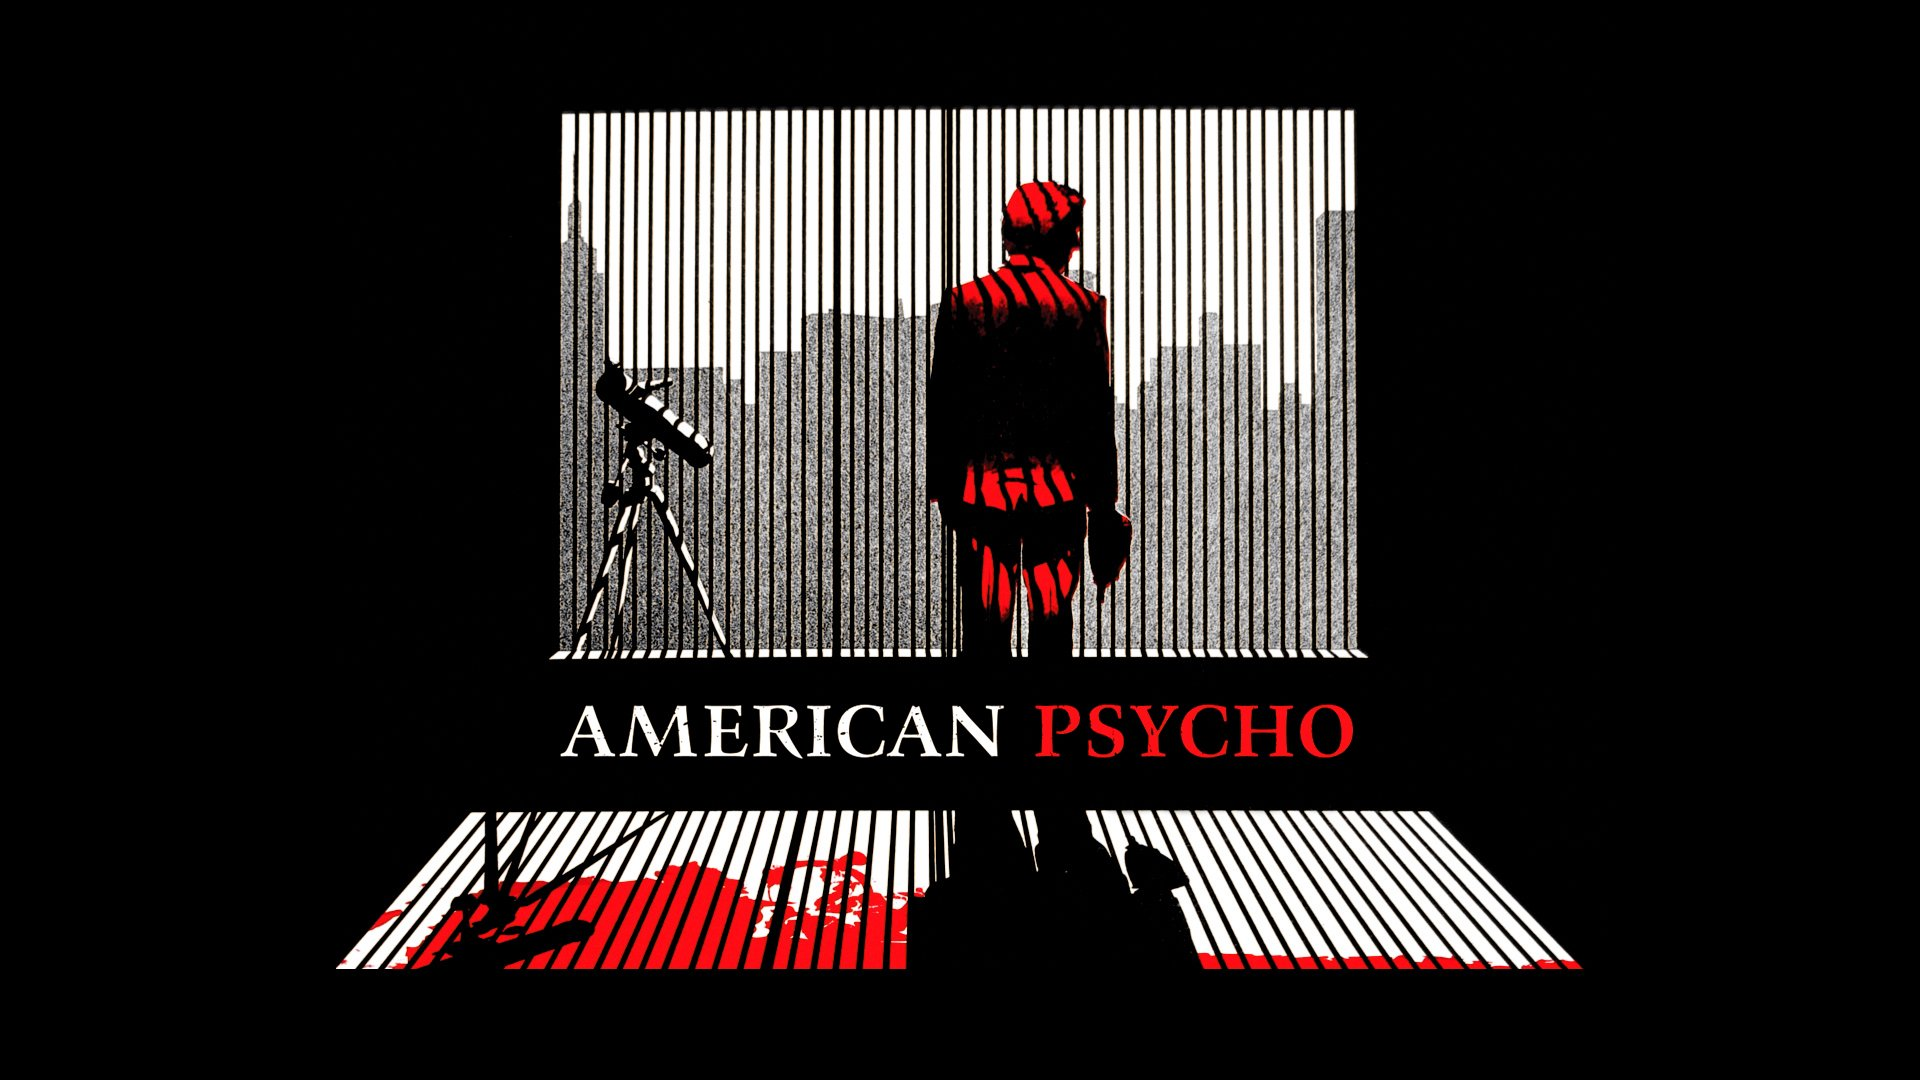 American Psycho Wallpaper Wallpapersafari